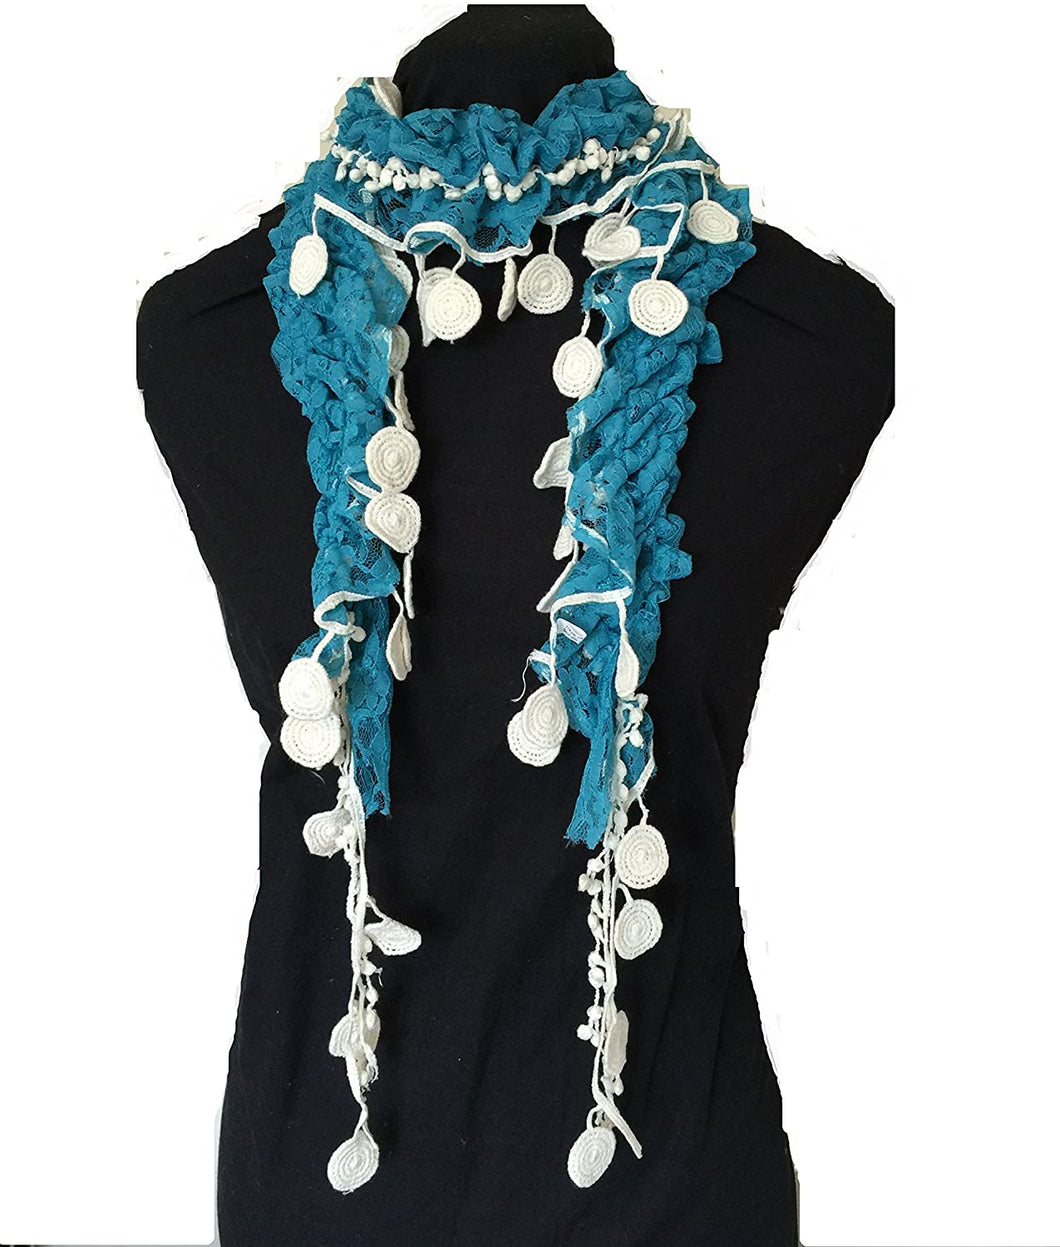 Pamper Yourself Now Blue with Cream Circle Long Thin lace Scarf with Tassels, Lovely Fashion Item. Fantastic Gift